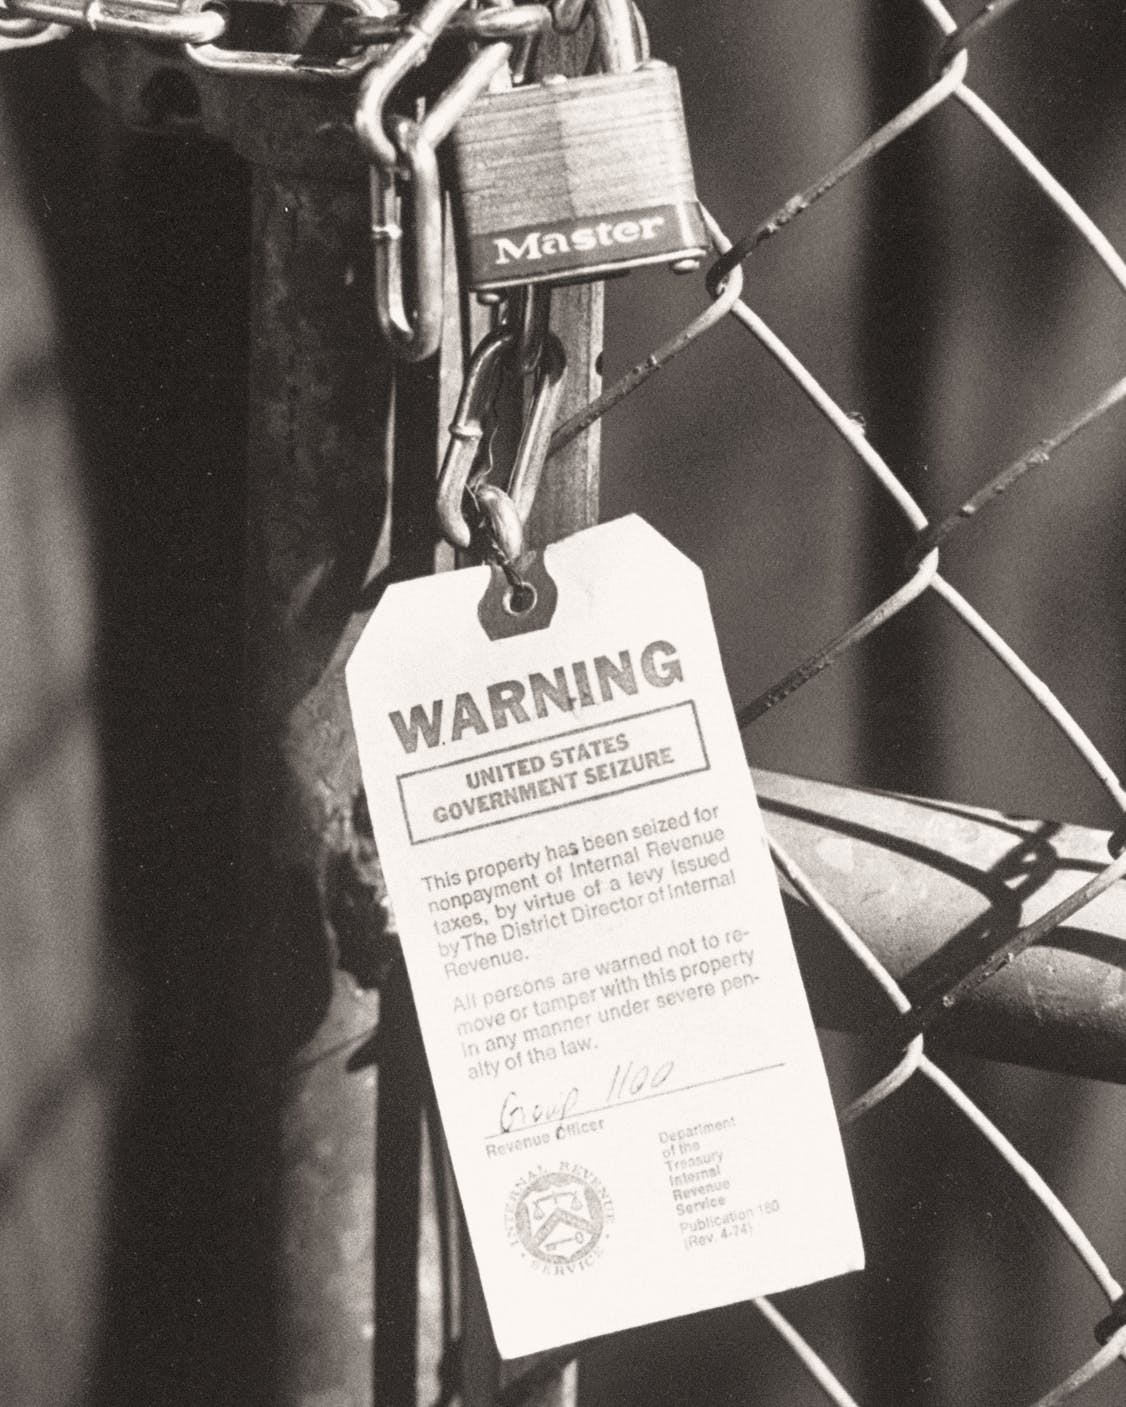 The chain-link fence at Willie's country club, padlocked by the IRS.